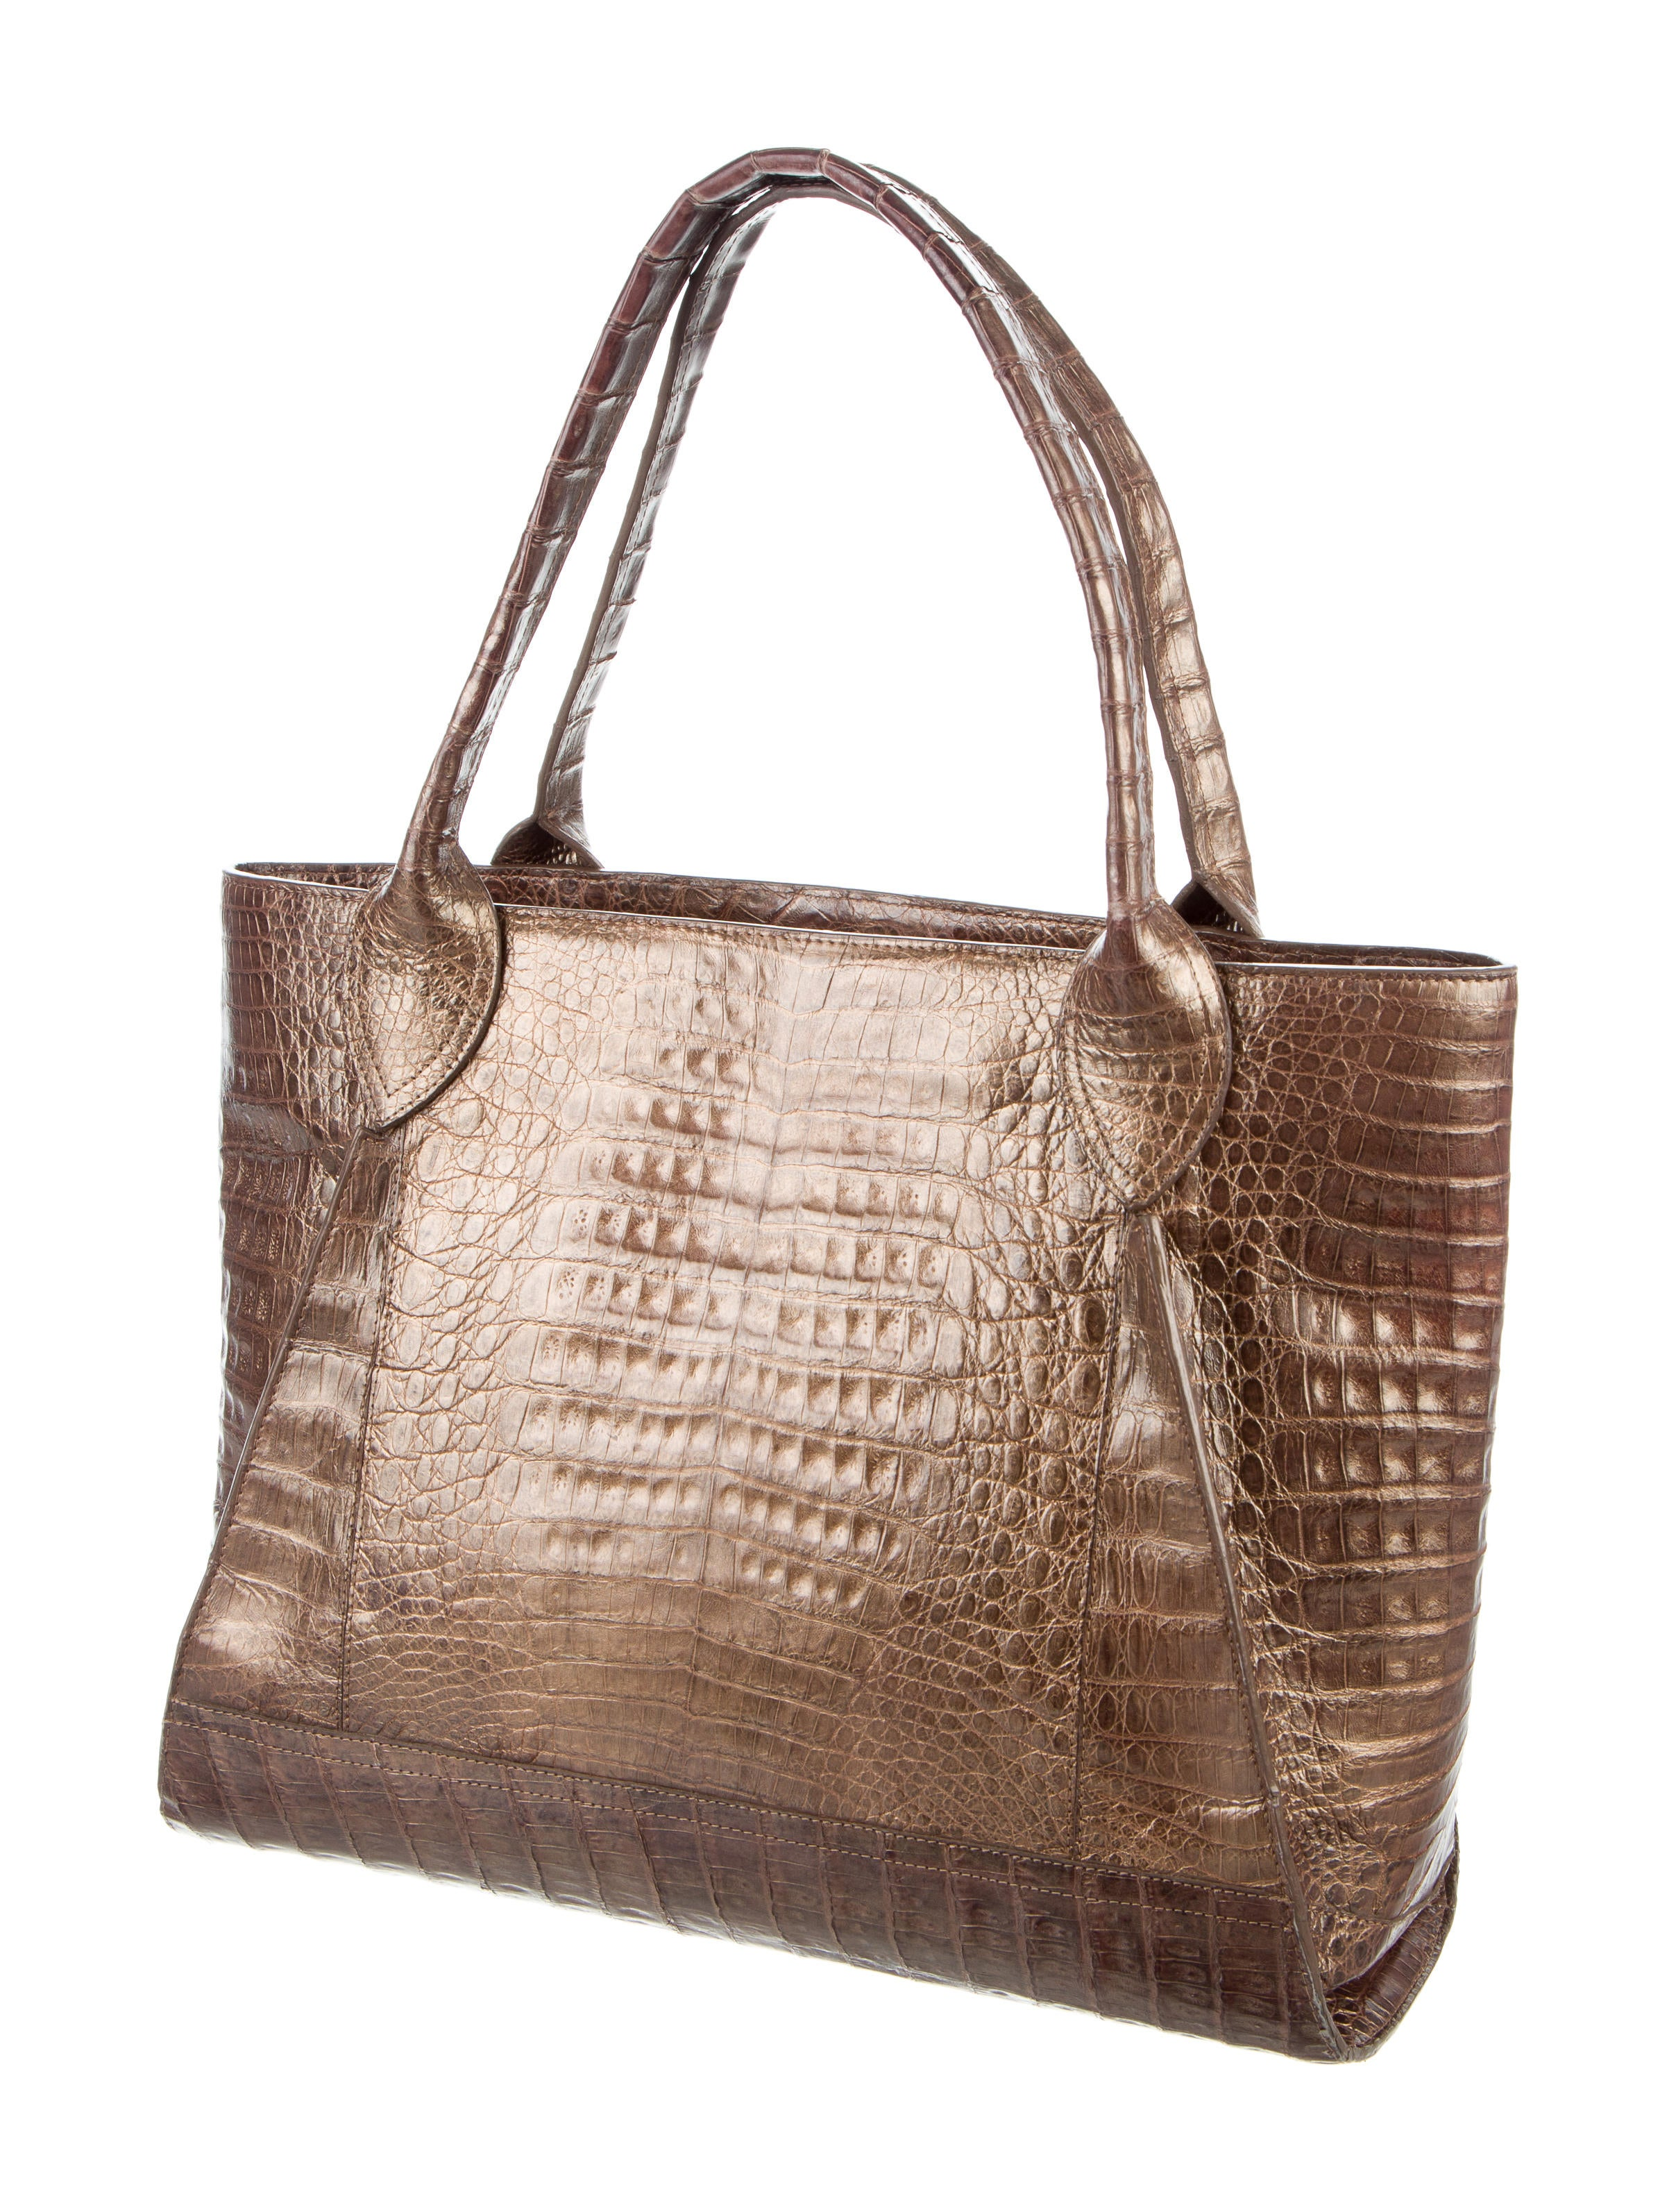 Nancy gonzalez crocodile tote handbags nan23646 the for Nancy gonzalez crocodile tote